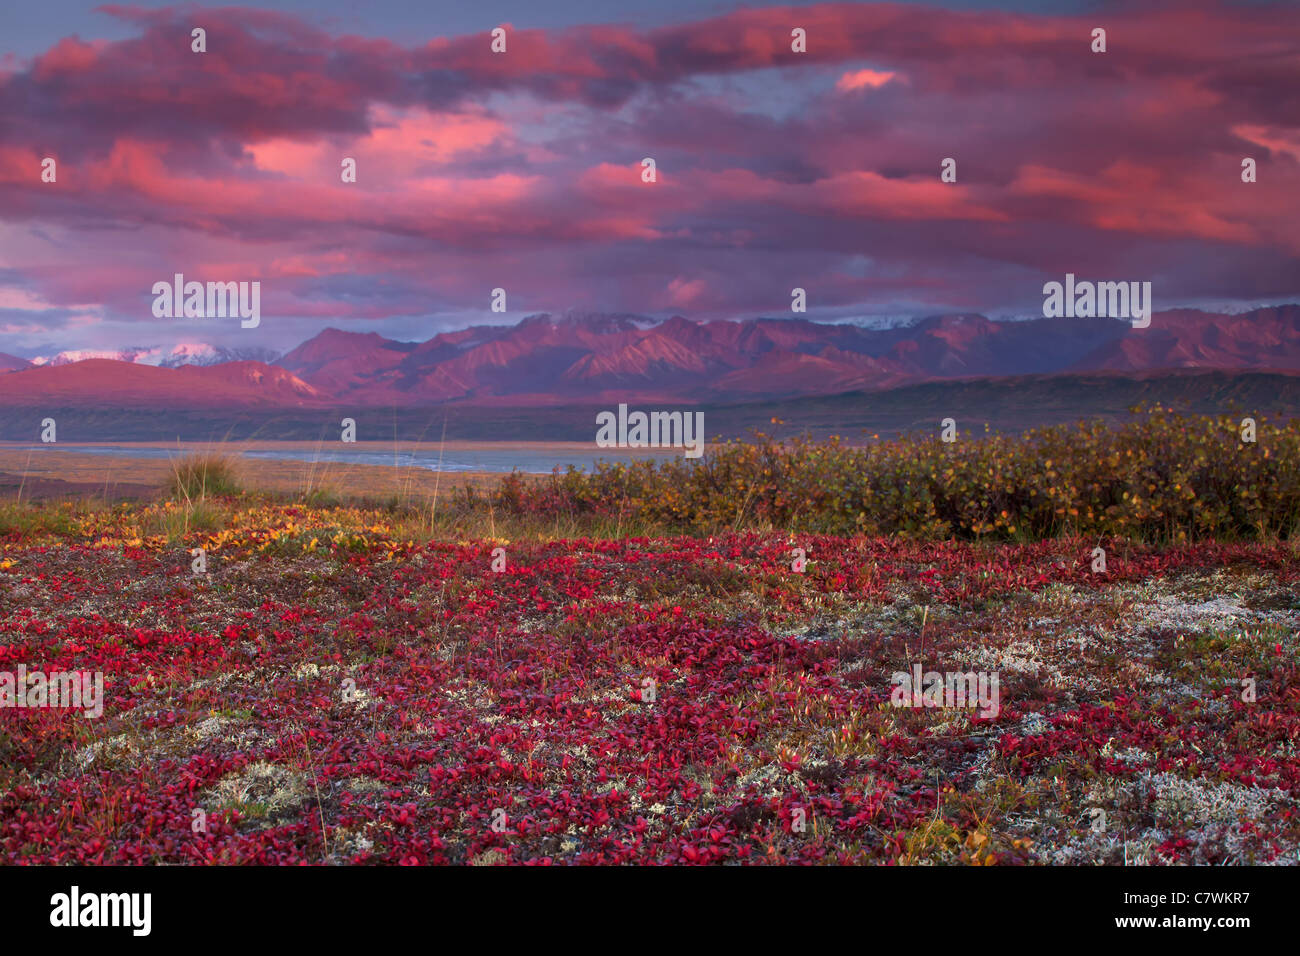 Mt. McKinley or Denali, Denali National Park, Alaska. - Stock Image